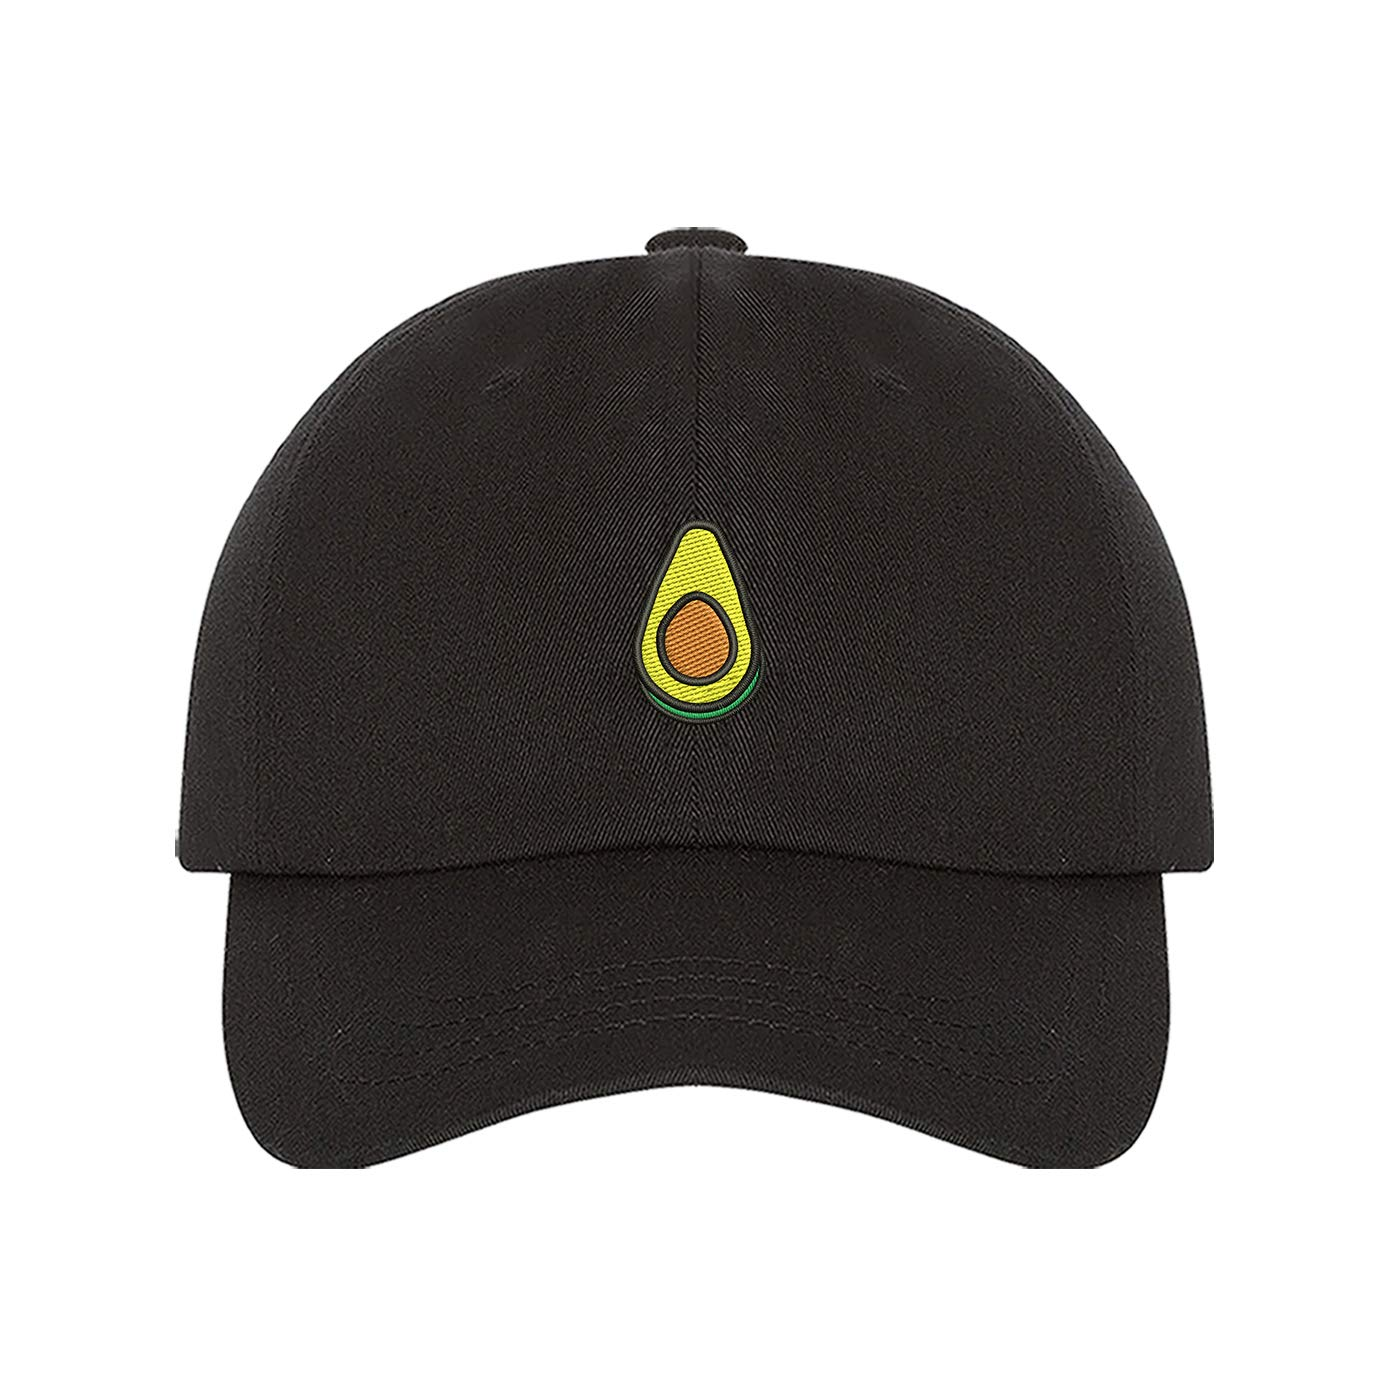 Prfcto Lifestyle Avocado Dad Hat- Black Baseball Cap- Unisex at Amazon  Women s Clothing store  5d42cce6bc4